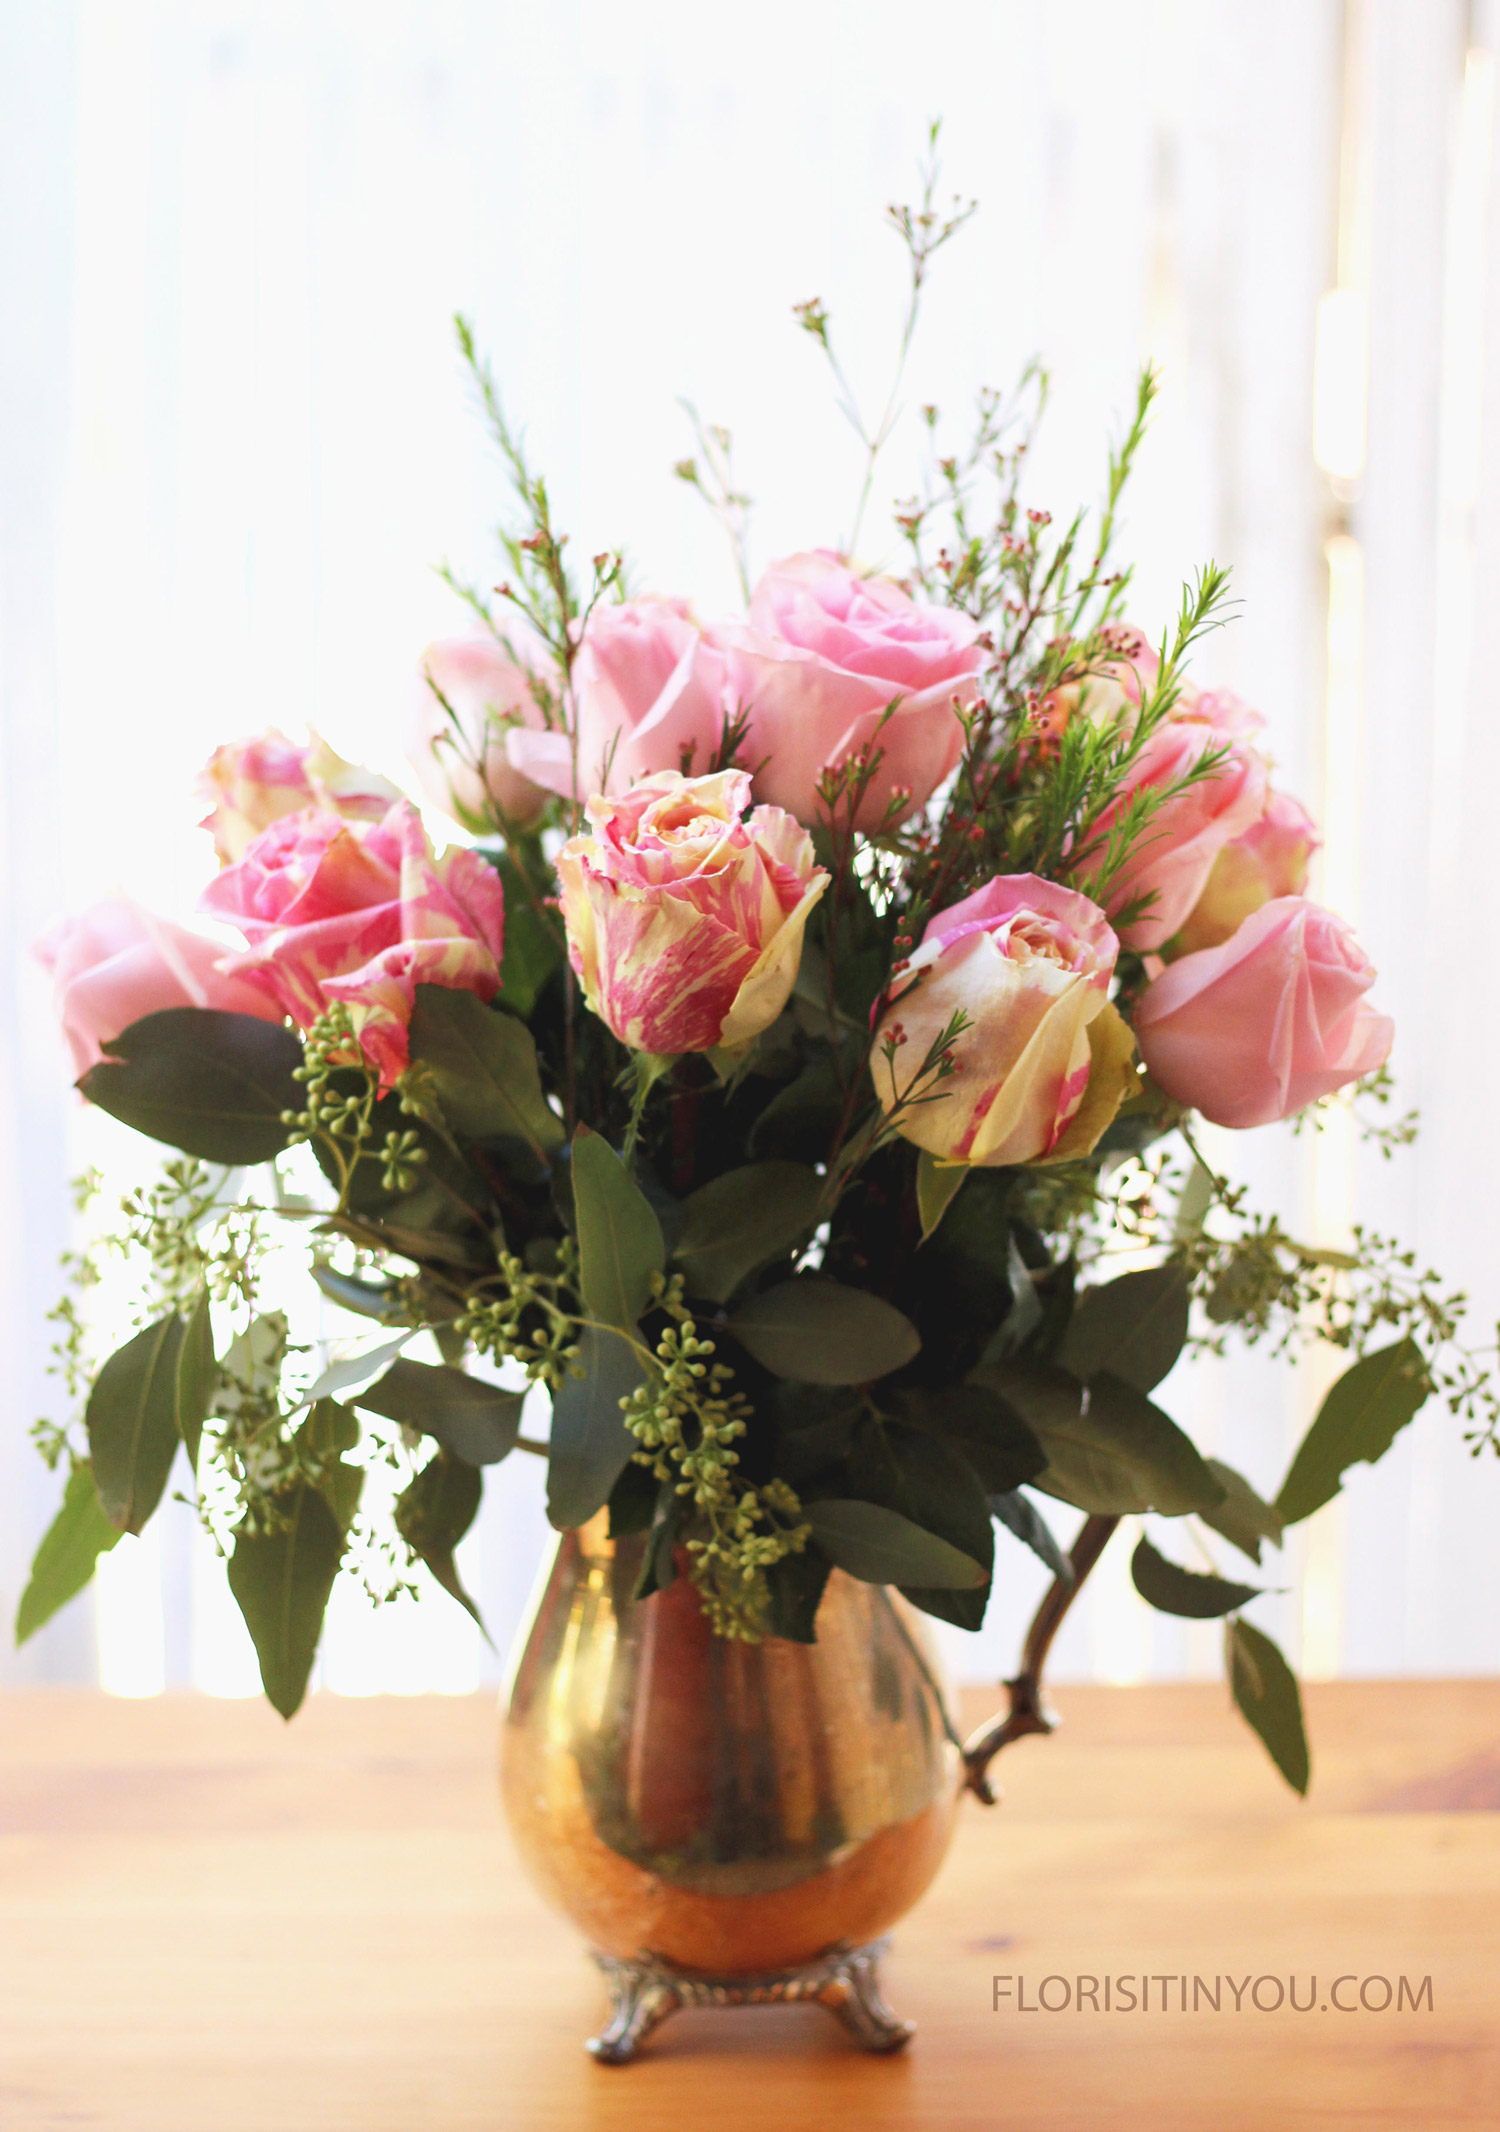 """Silver Pitcher and Candy Cane Roses                     Normal   0           false   false   false     EN-US   JA   X-NONE                                                                                                                                                                                                                                                                                                                                                                              /* Style Definitions */ table.MsoNormalTable {mso-style-name:""""Table Normal""""; mso-tstyle-rowband-size:0; mso-tstyle-colband-size:0; mso-style-noshow:yes; mso-style-priority:99; mso-style-parent:""""""""; mso-padding-alt:0in 5.4pt 0in 5.4pt; mso-para-margin:0in; mso-para-margin-bottom:.0001pt; mso-pagination:widow-orphan; font-size:12.0pt; font-family:Cambria; mso-ascii-font-family:Cambria; mso-ascii-theme-font:minor-latin; mso-hansi-font-family:Cambria; mso-hansi-theme-font:minor-latin;}"""